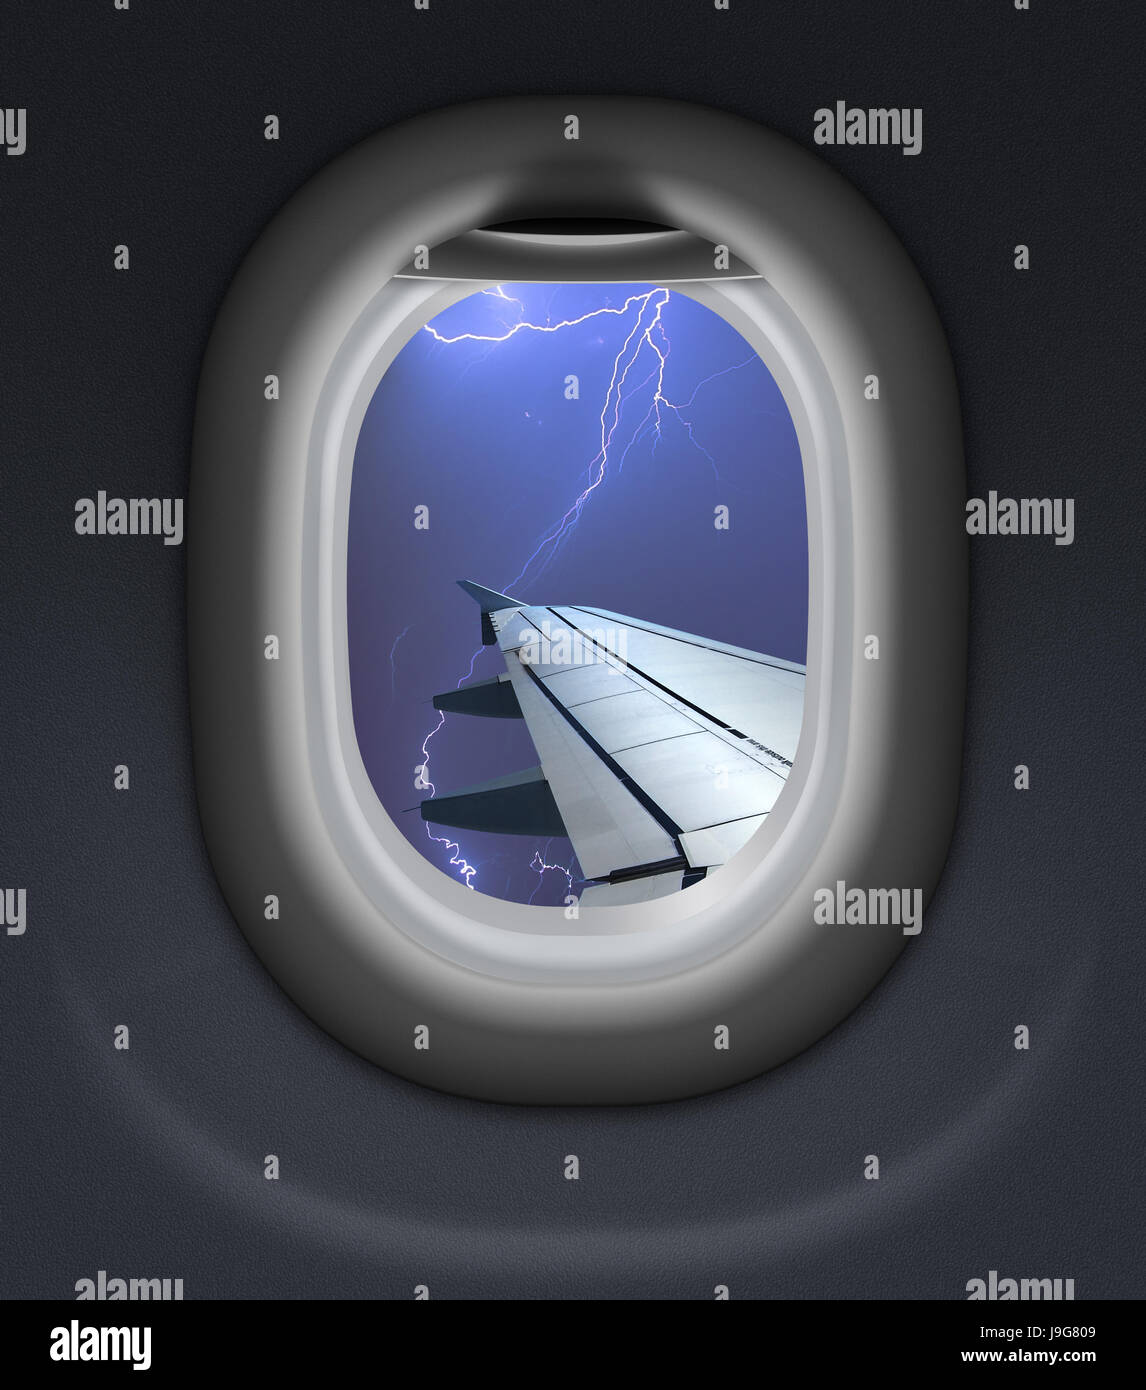 airplane window view in storm with thunderbolt 3d illustration Stock Photo